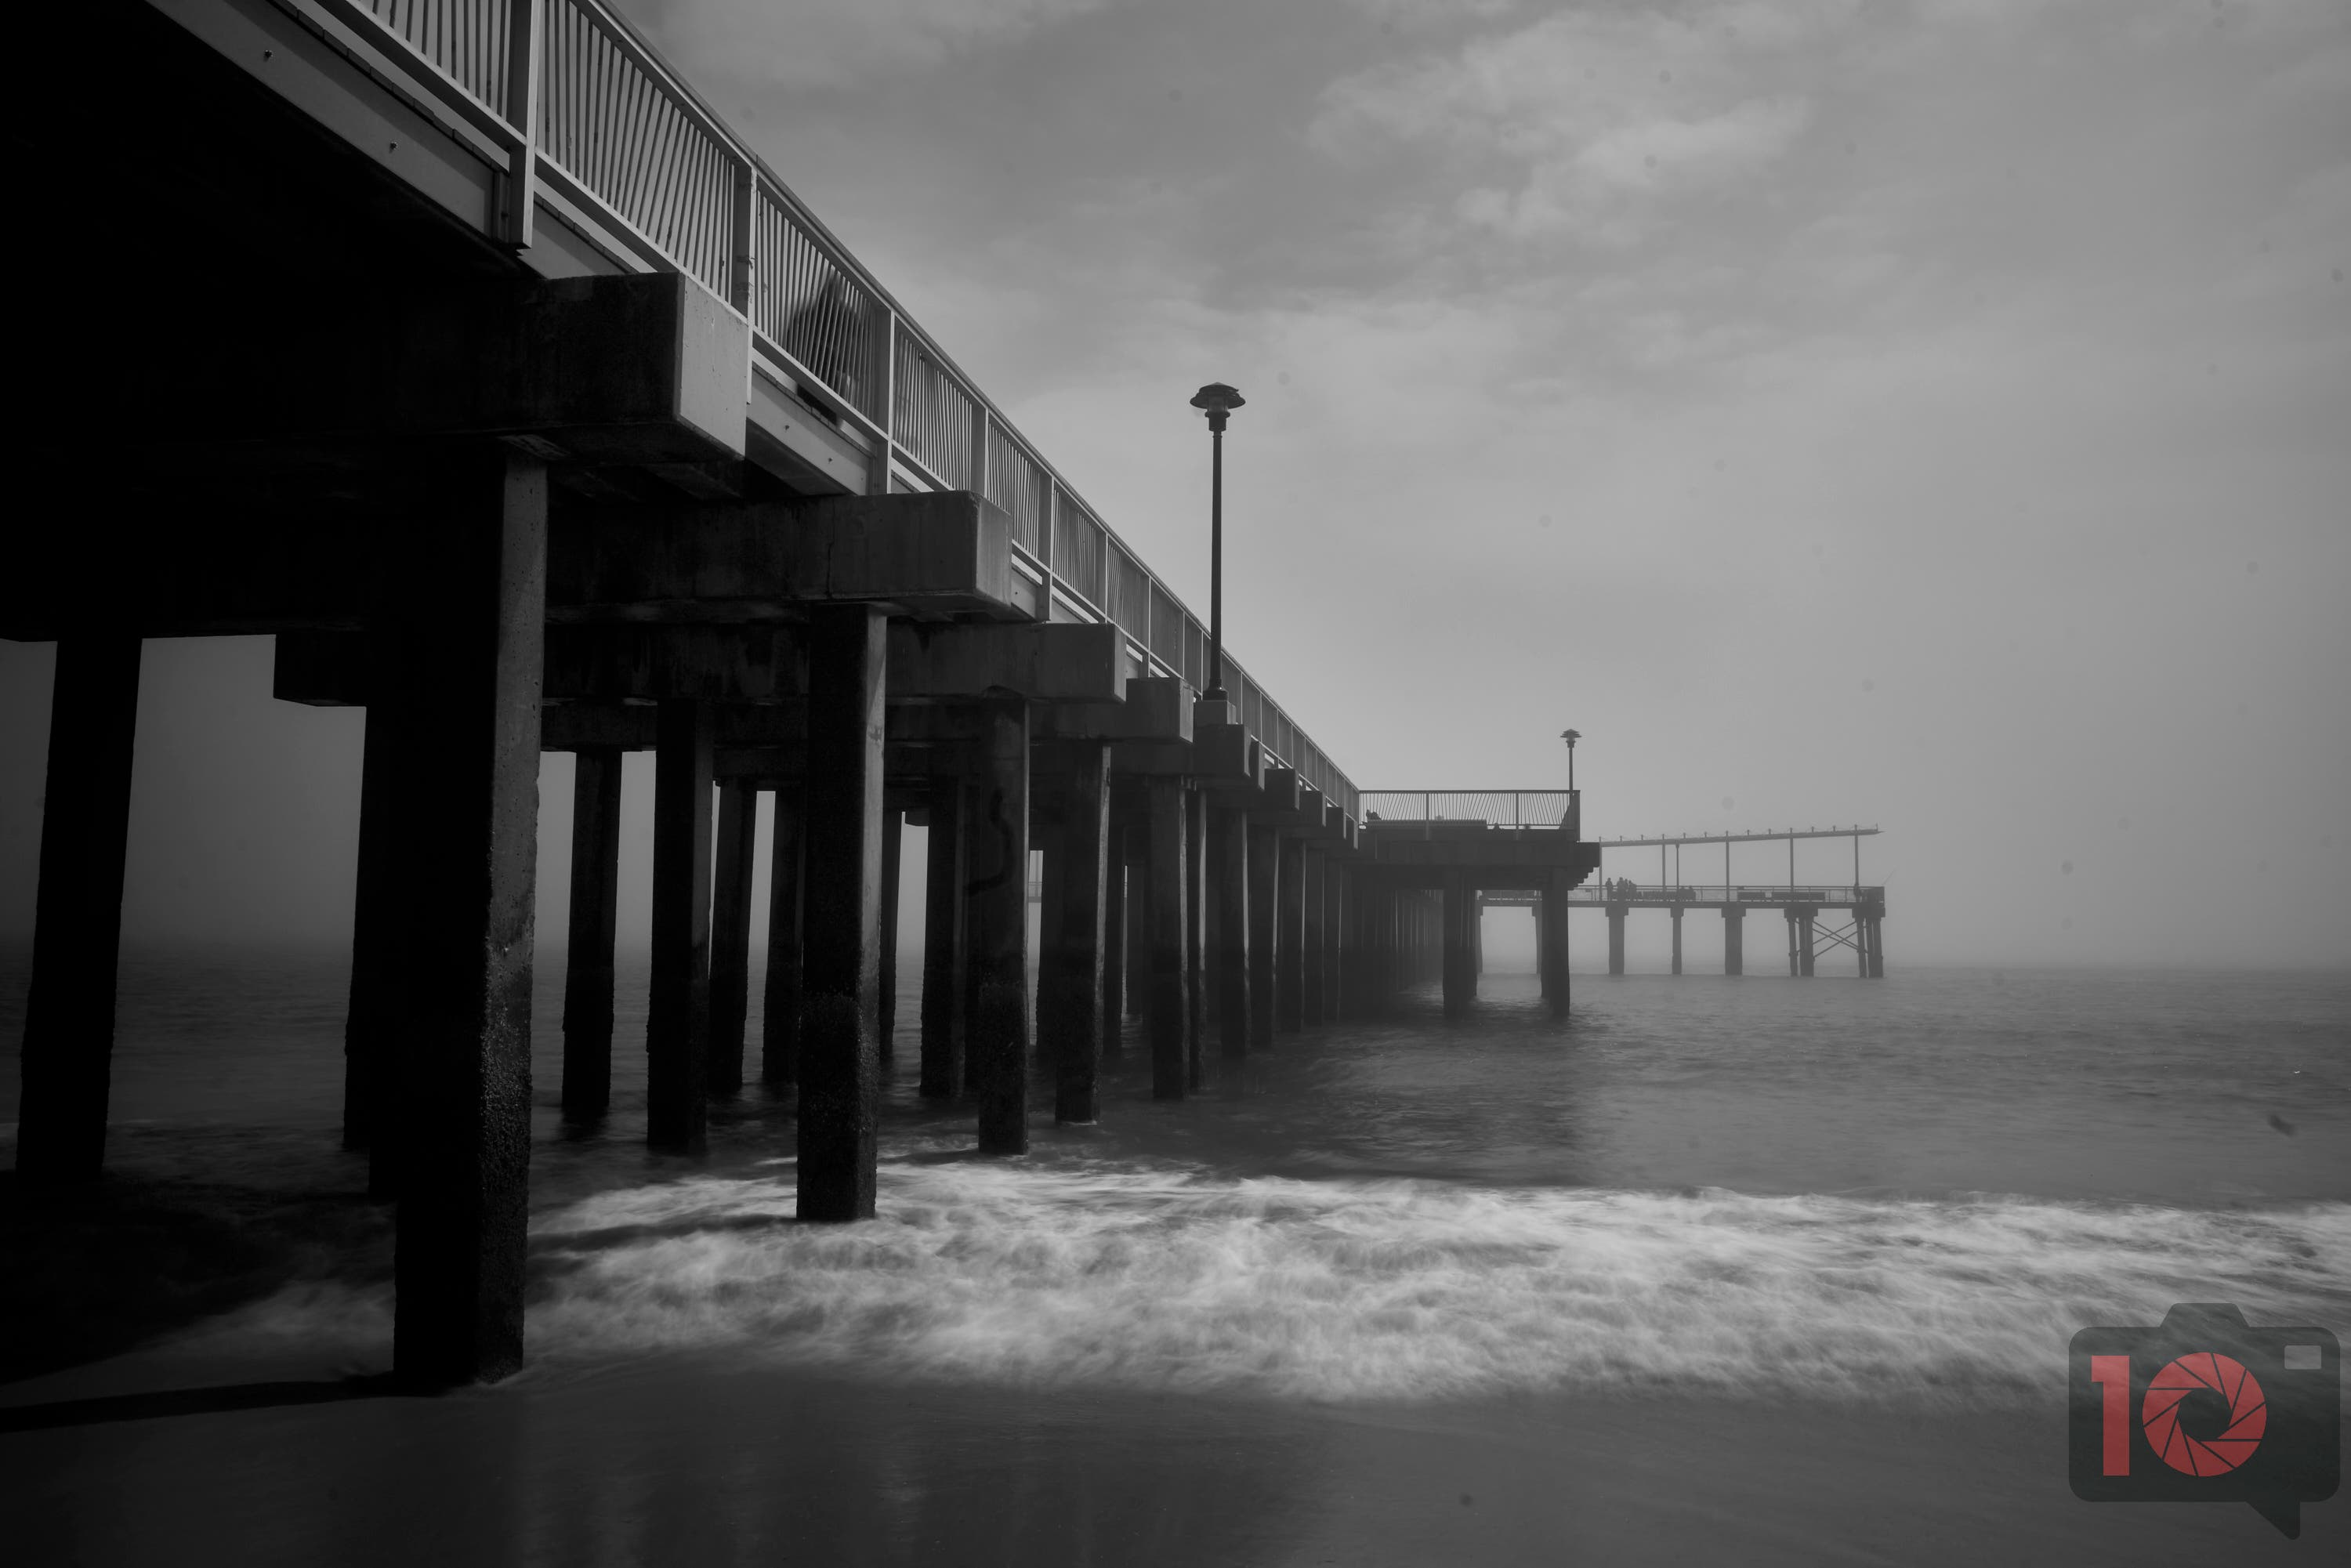 All You Need to Create Dramatic Seascapes Is a Great All-In-One Lens